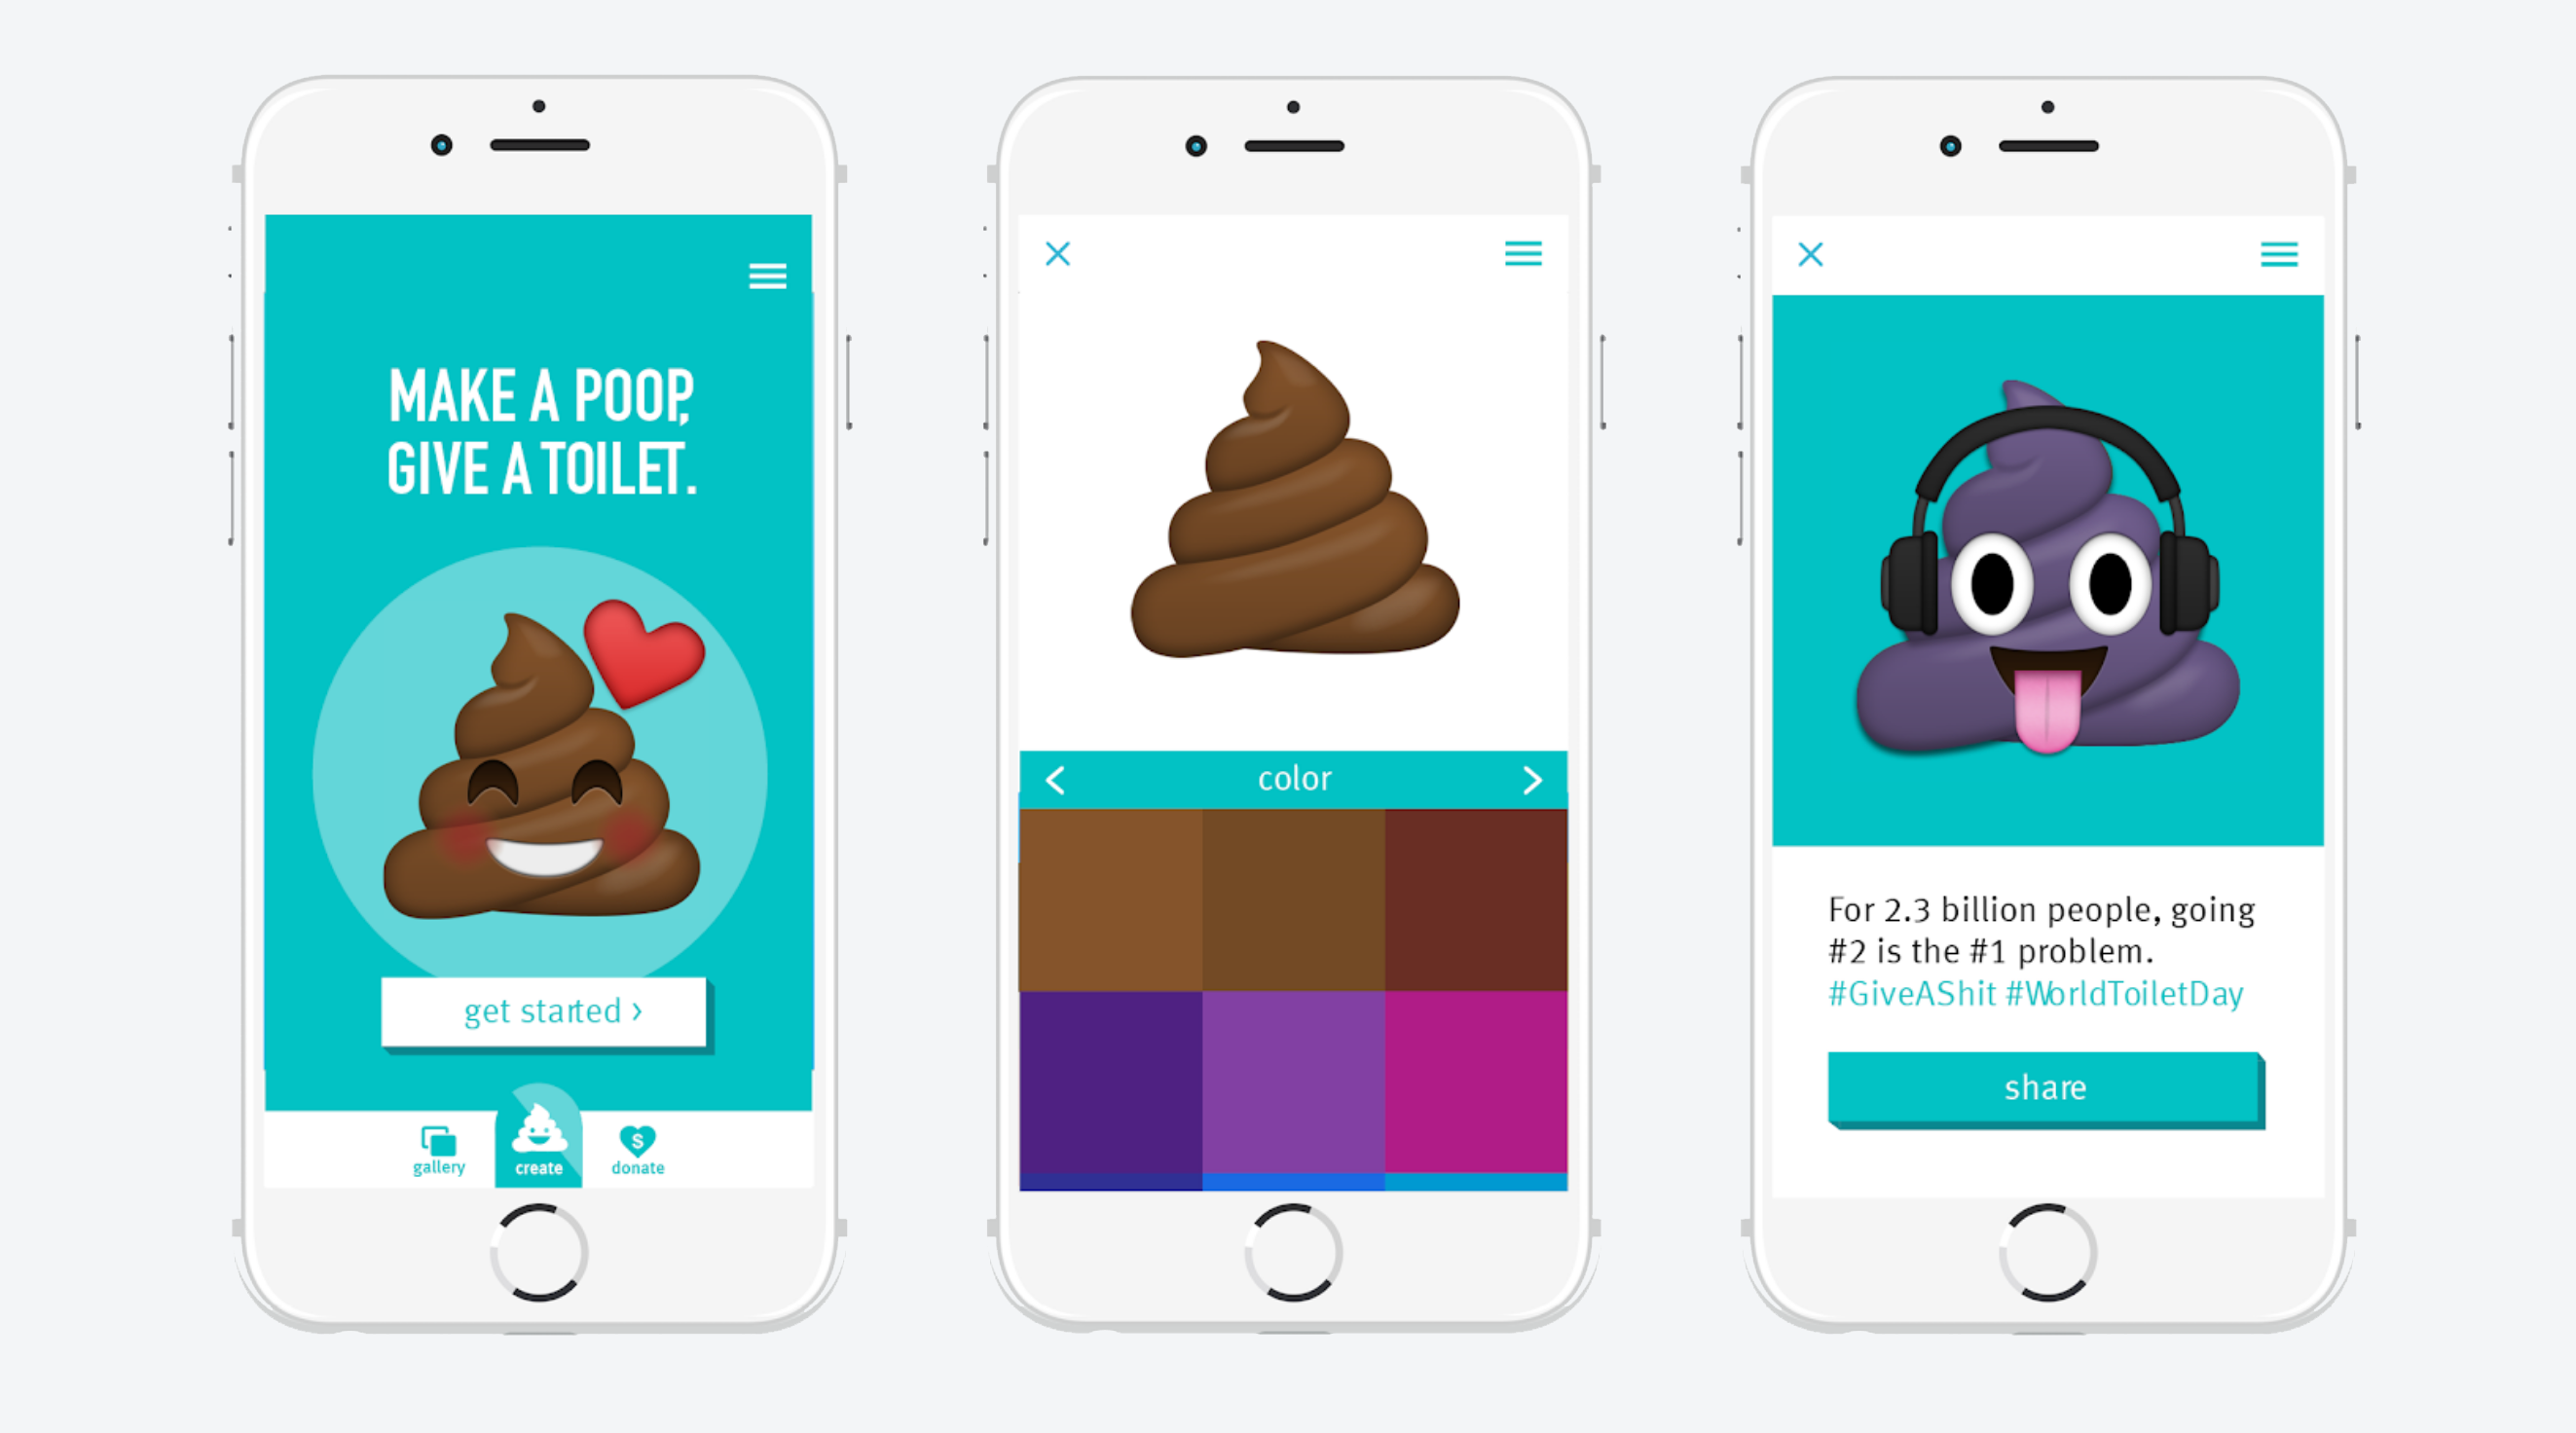 WaterAid poop emoji mobile application screenshots